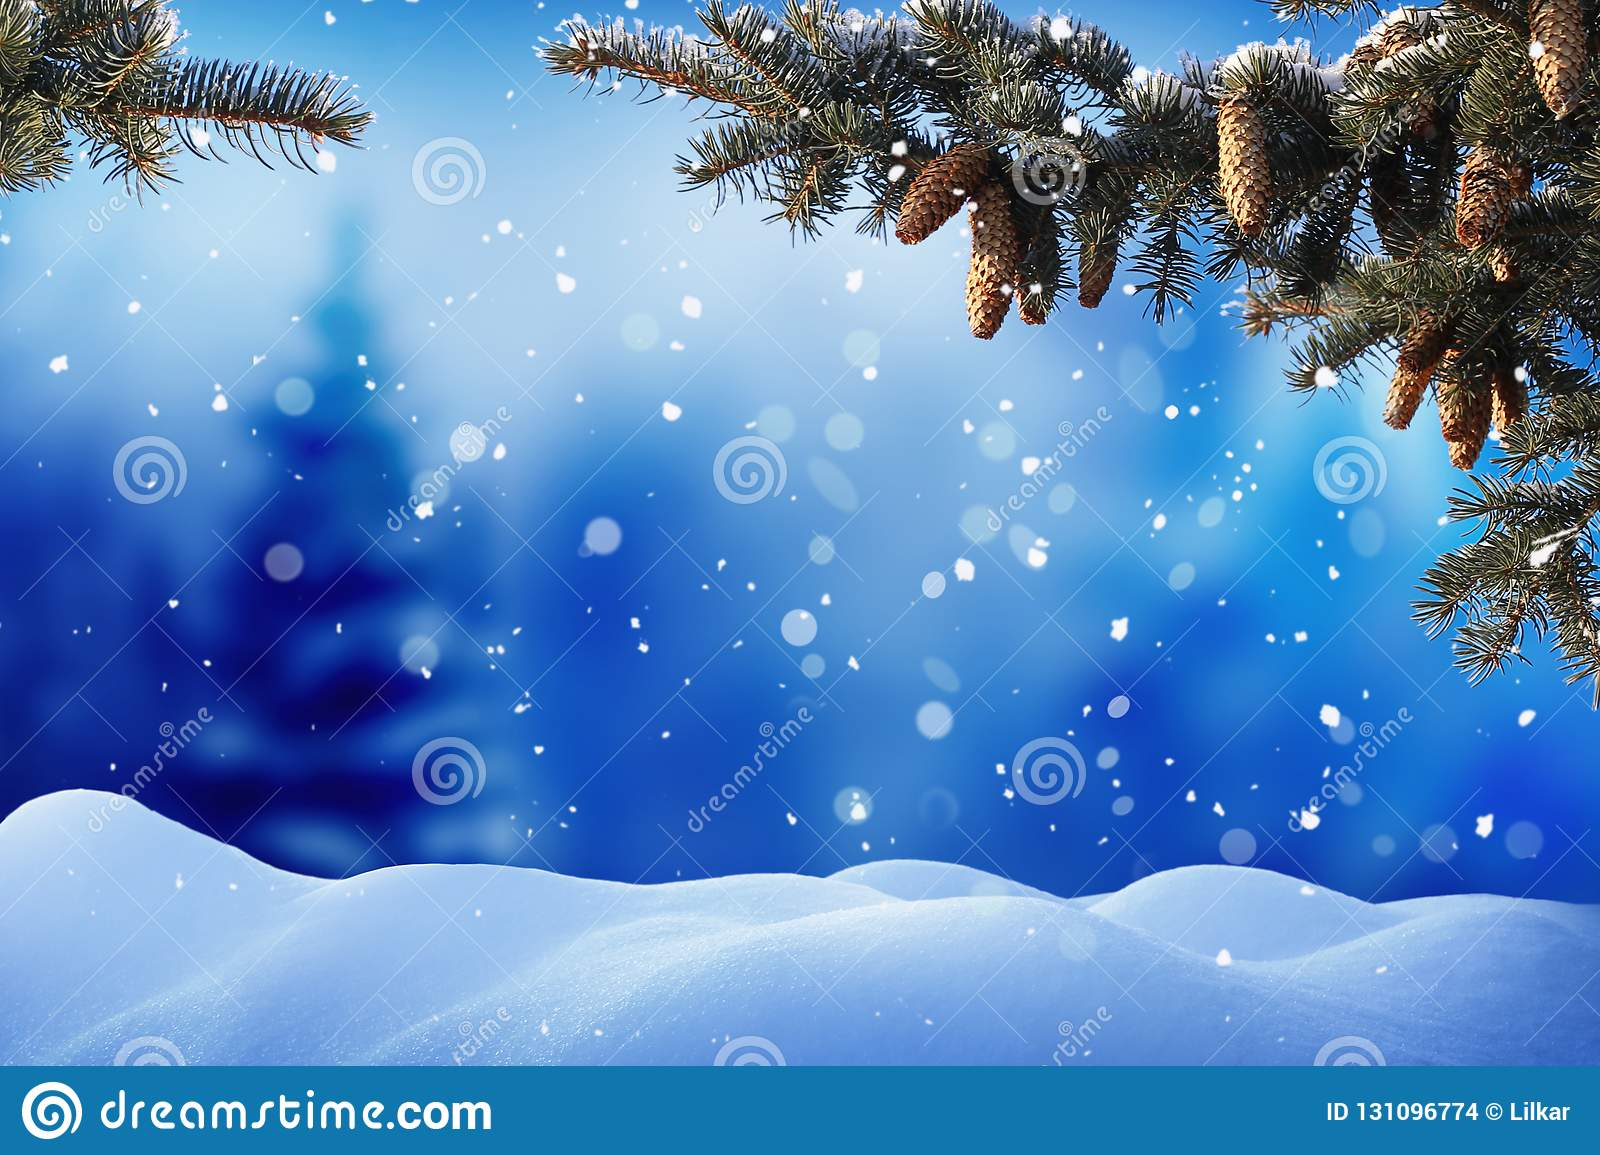 Winter landscape with snow .Christmas background with fir tree